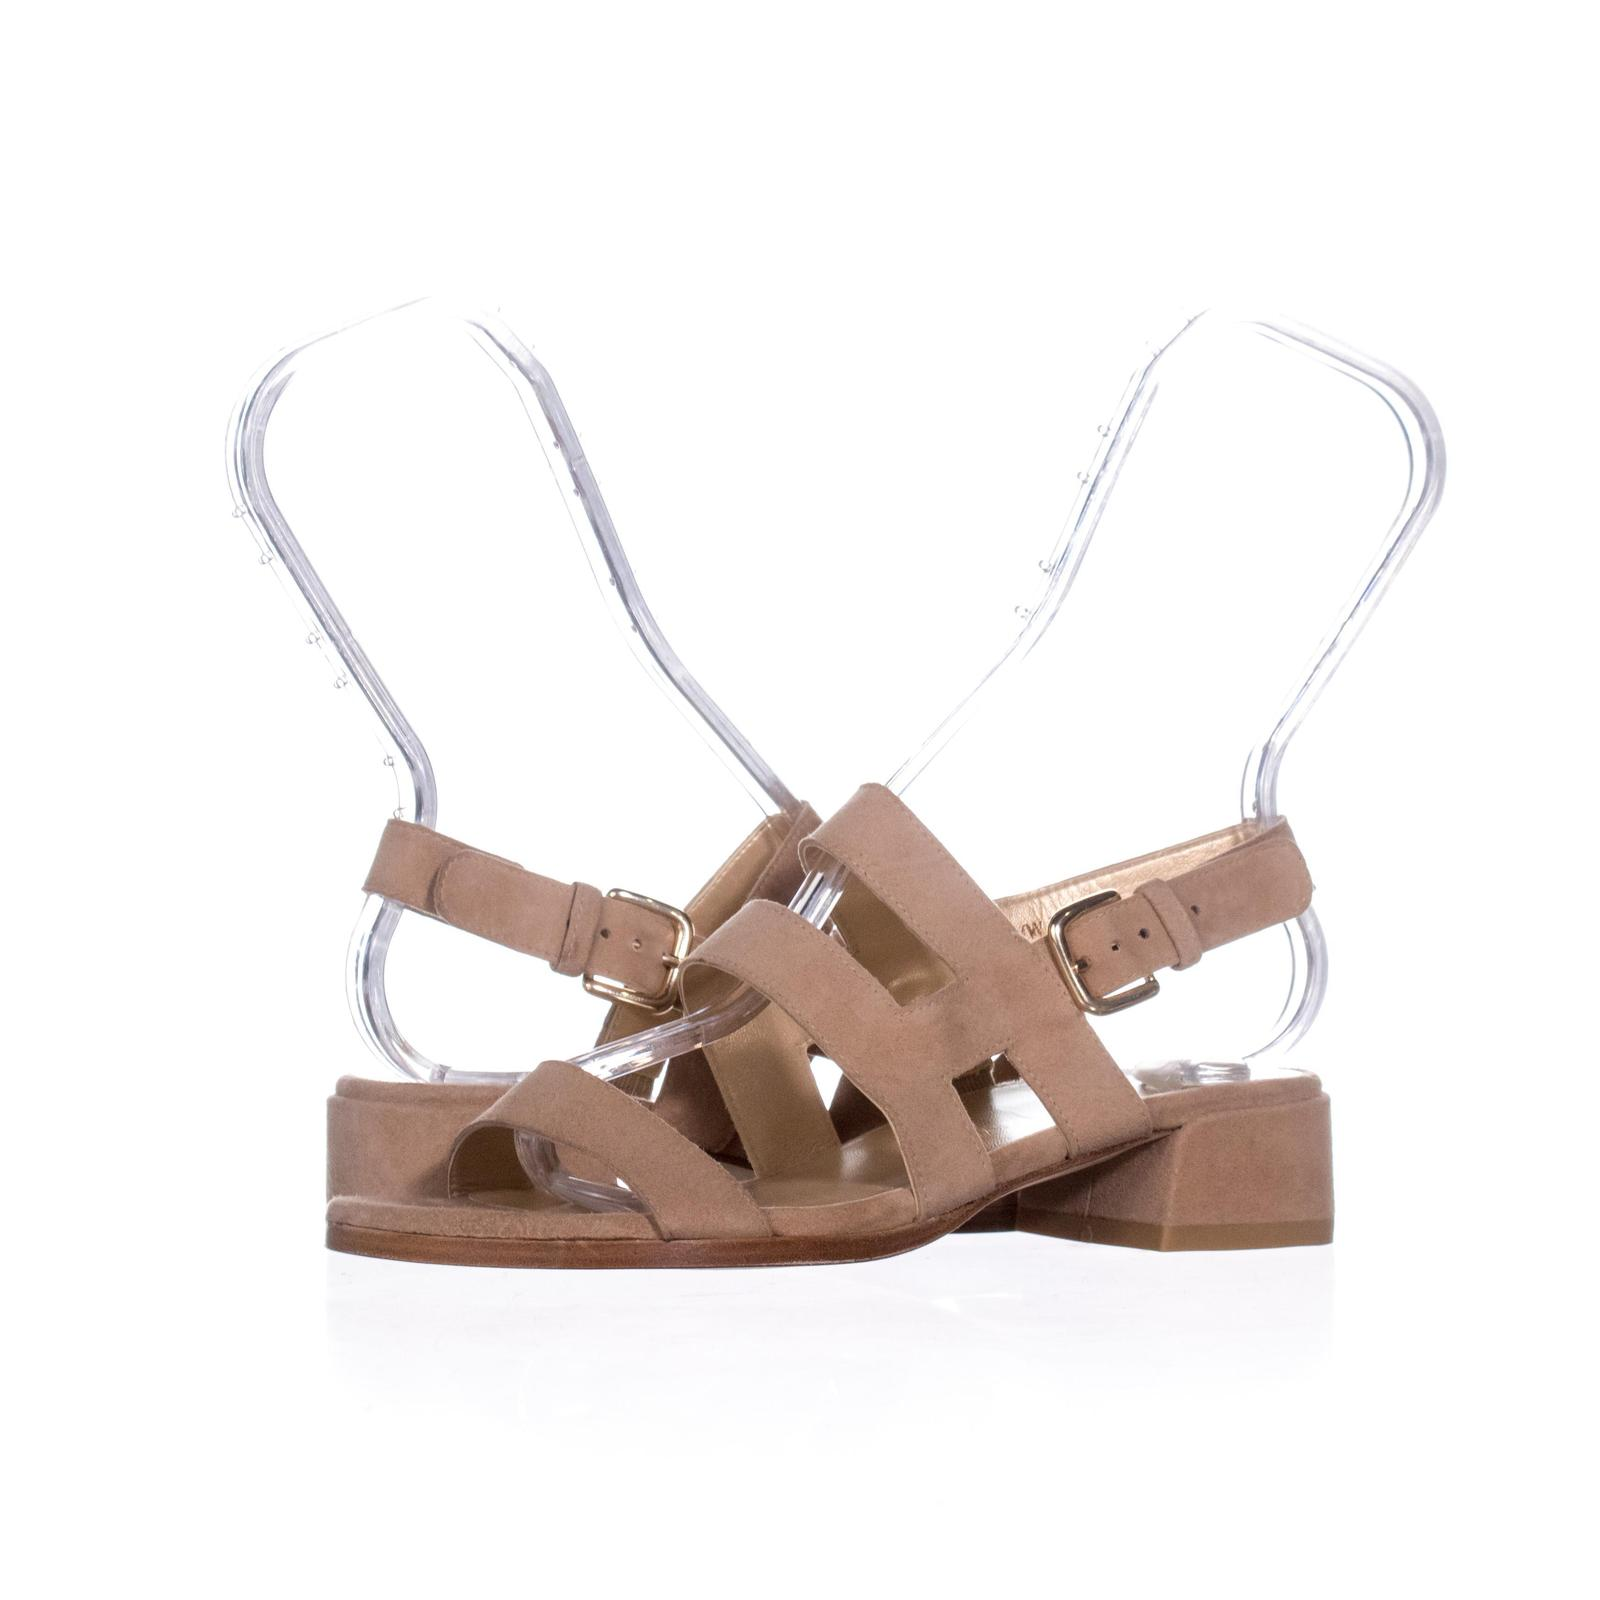 Primary image for Stuart Weitzman Barrio Slingback Sandals 226, Cashew, 5.5 US